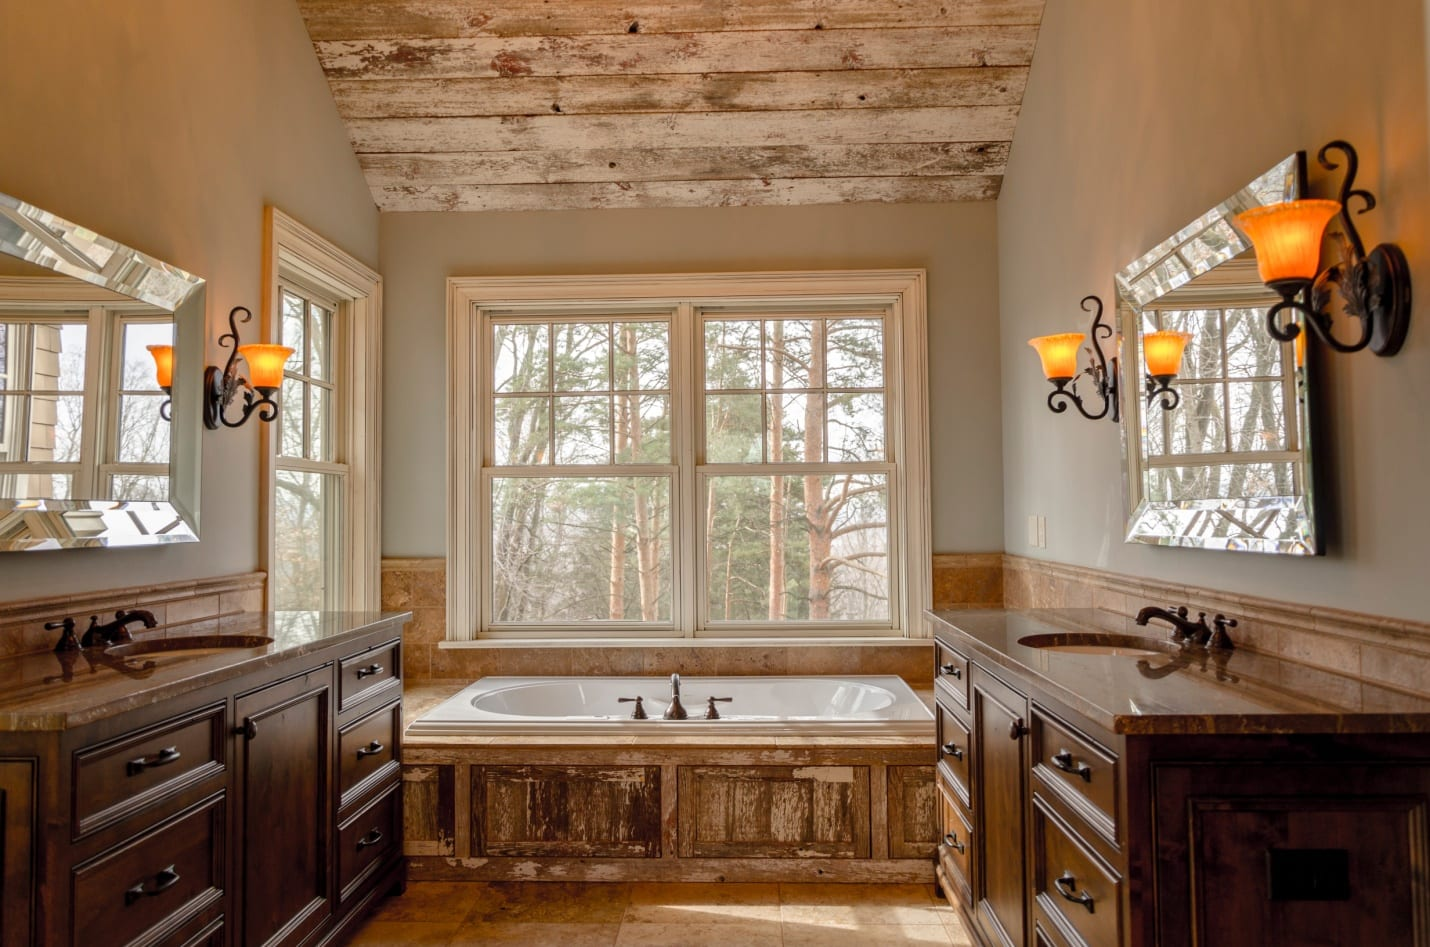 How to fix the lighting in your bathroom